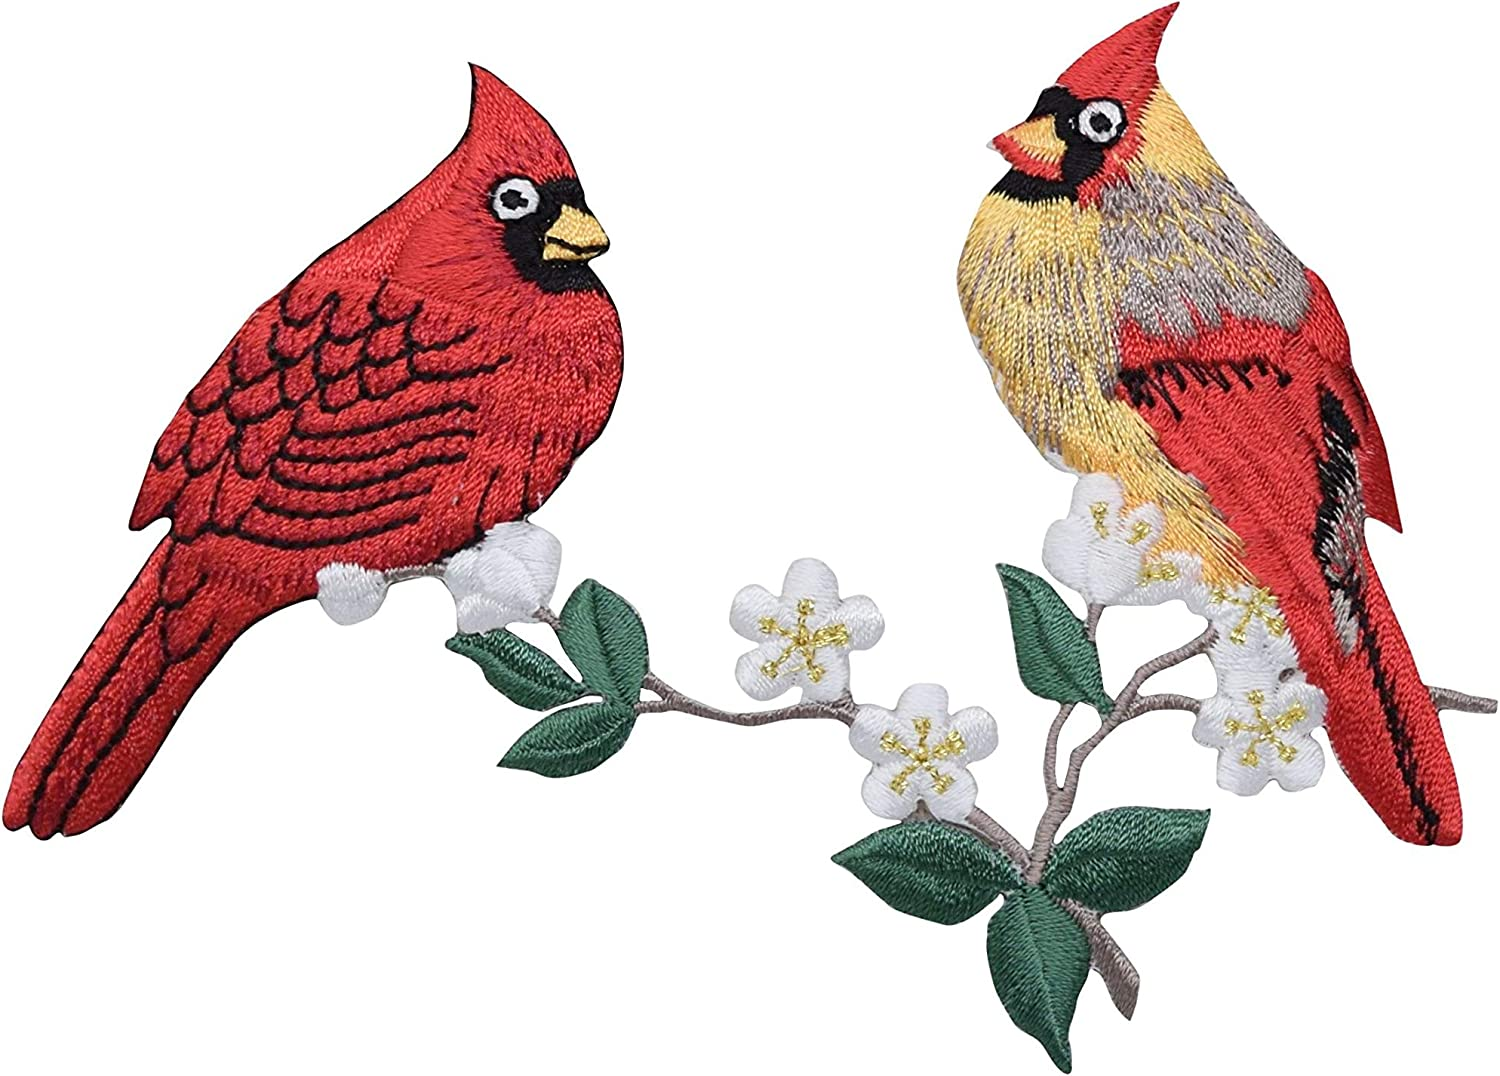 Red Male Cardinal//Bird Facing Right Iron on Applique//Embroidered Patch